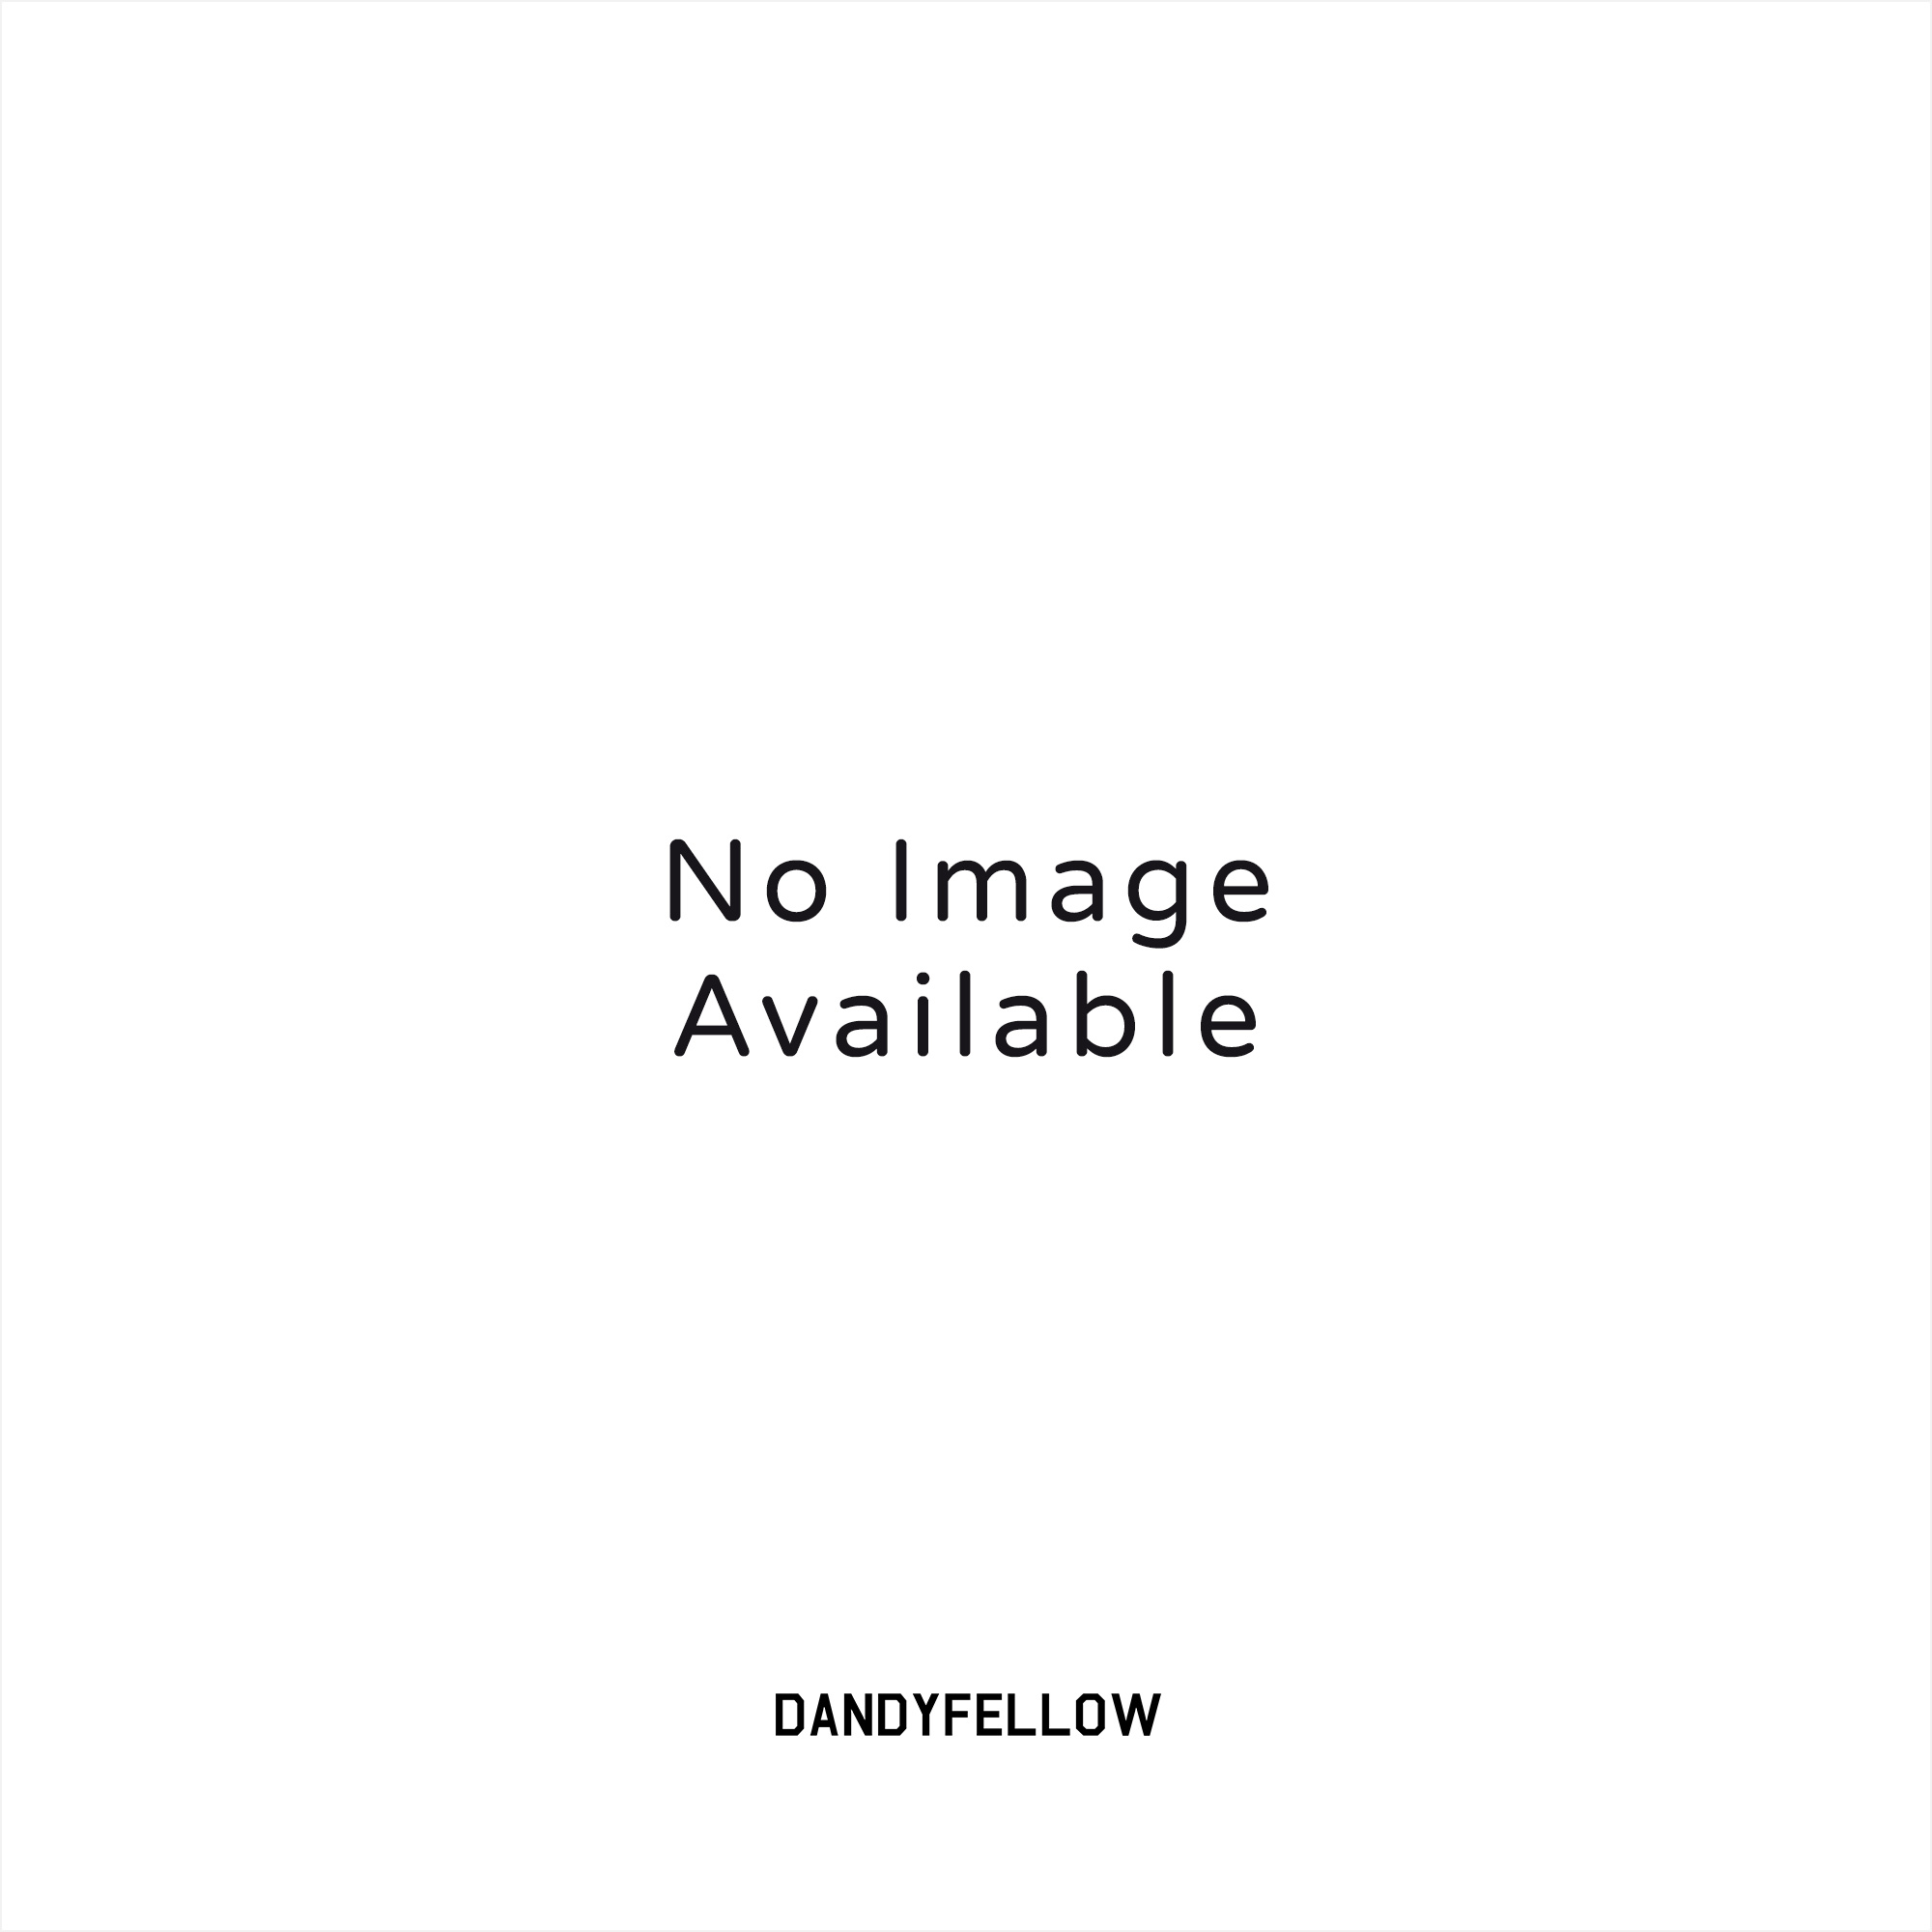 fe57a18adcaa adidas Originals Adilette Slides (Core Black) at Dandy Fellow